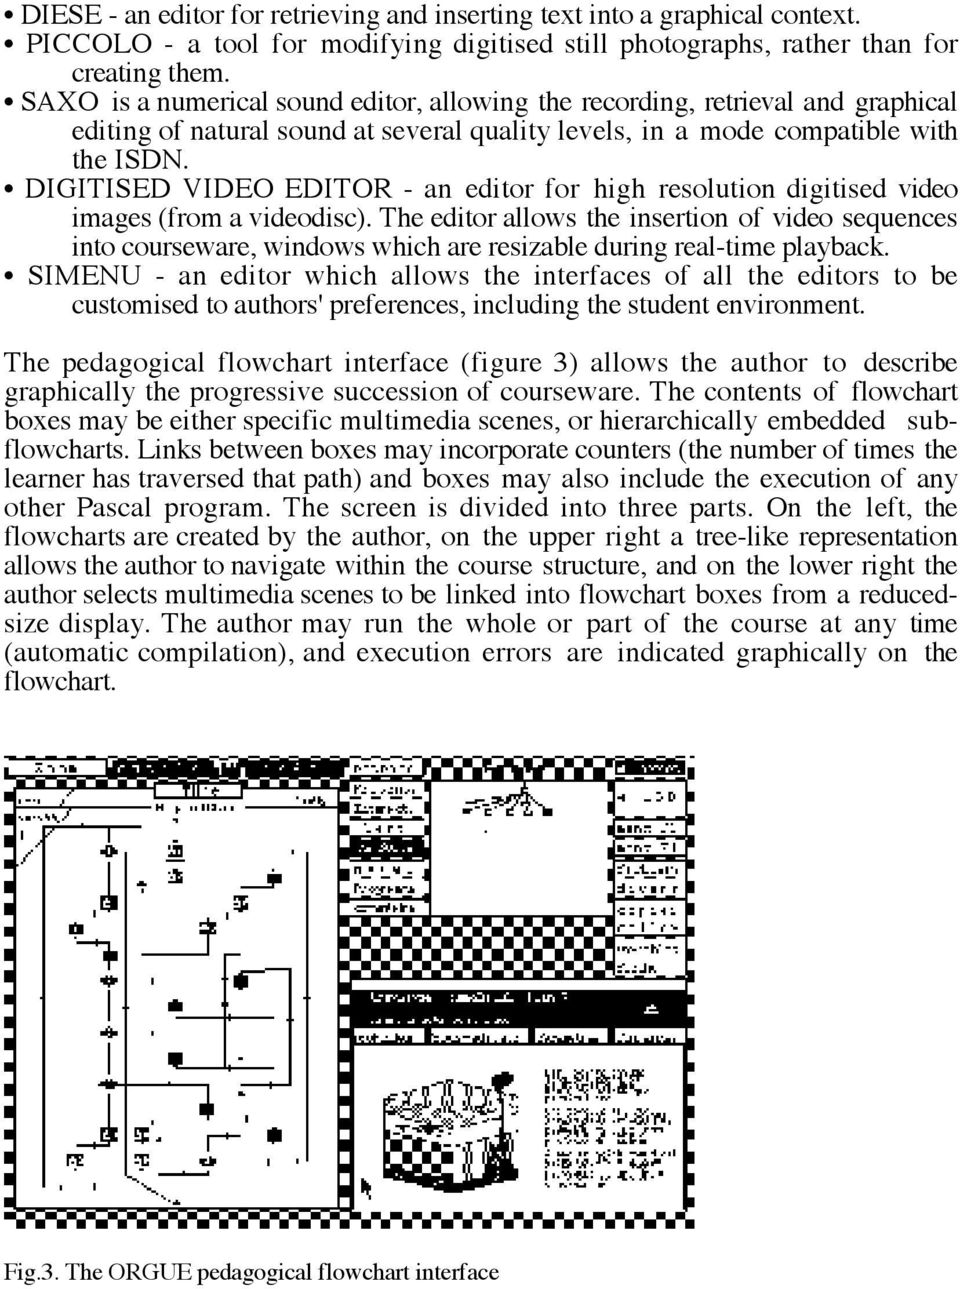 DIGITISED VIDEO EDITOR - an editor for high resolution digitised video images (from a videodisc).